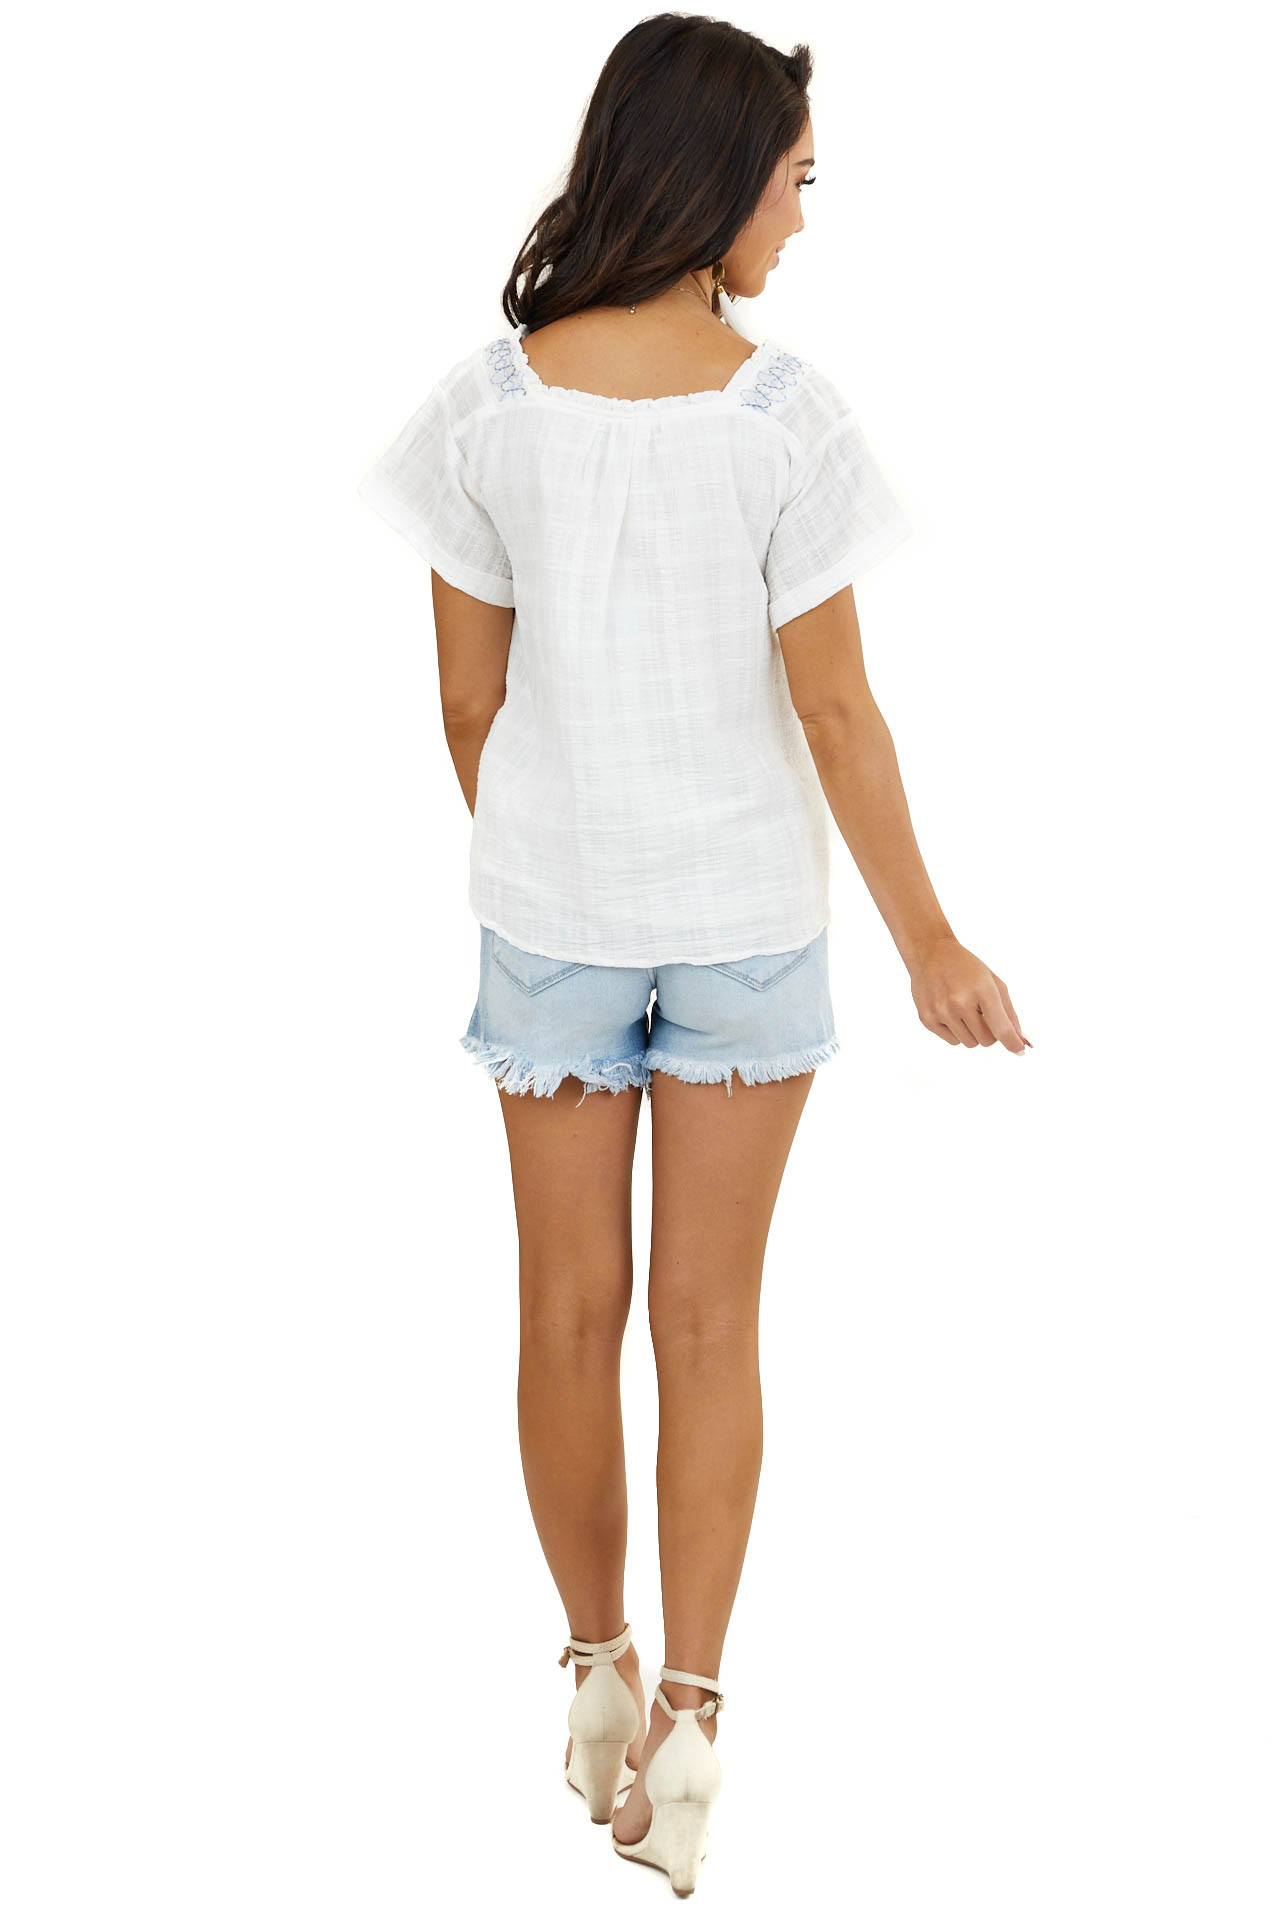 Ivory Smocked Top with Embroidery Detail